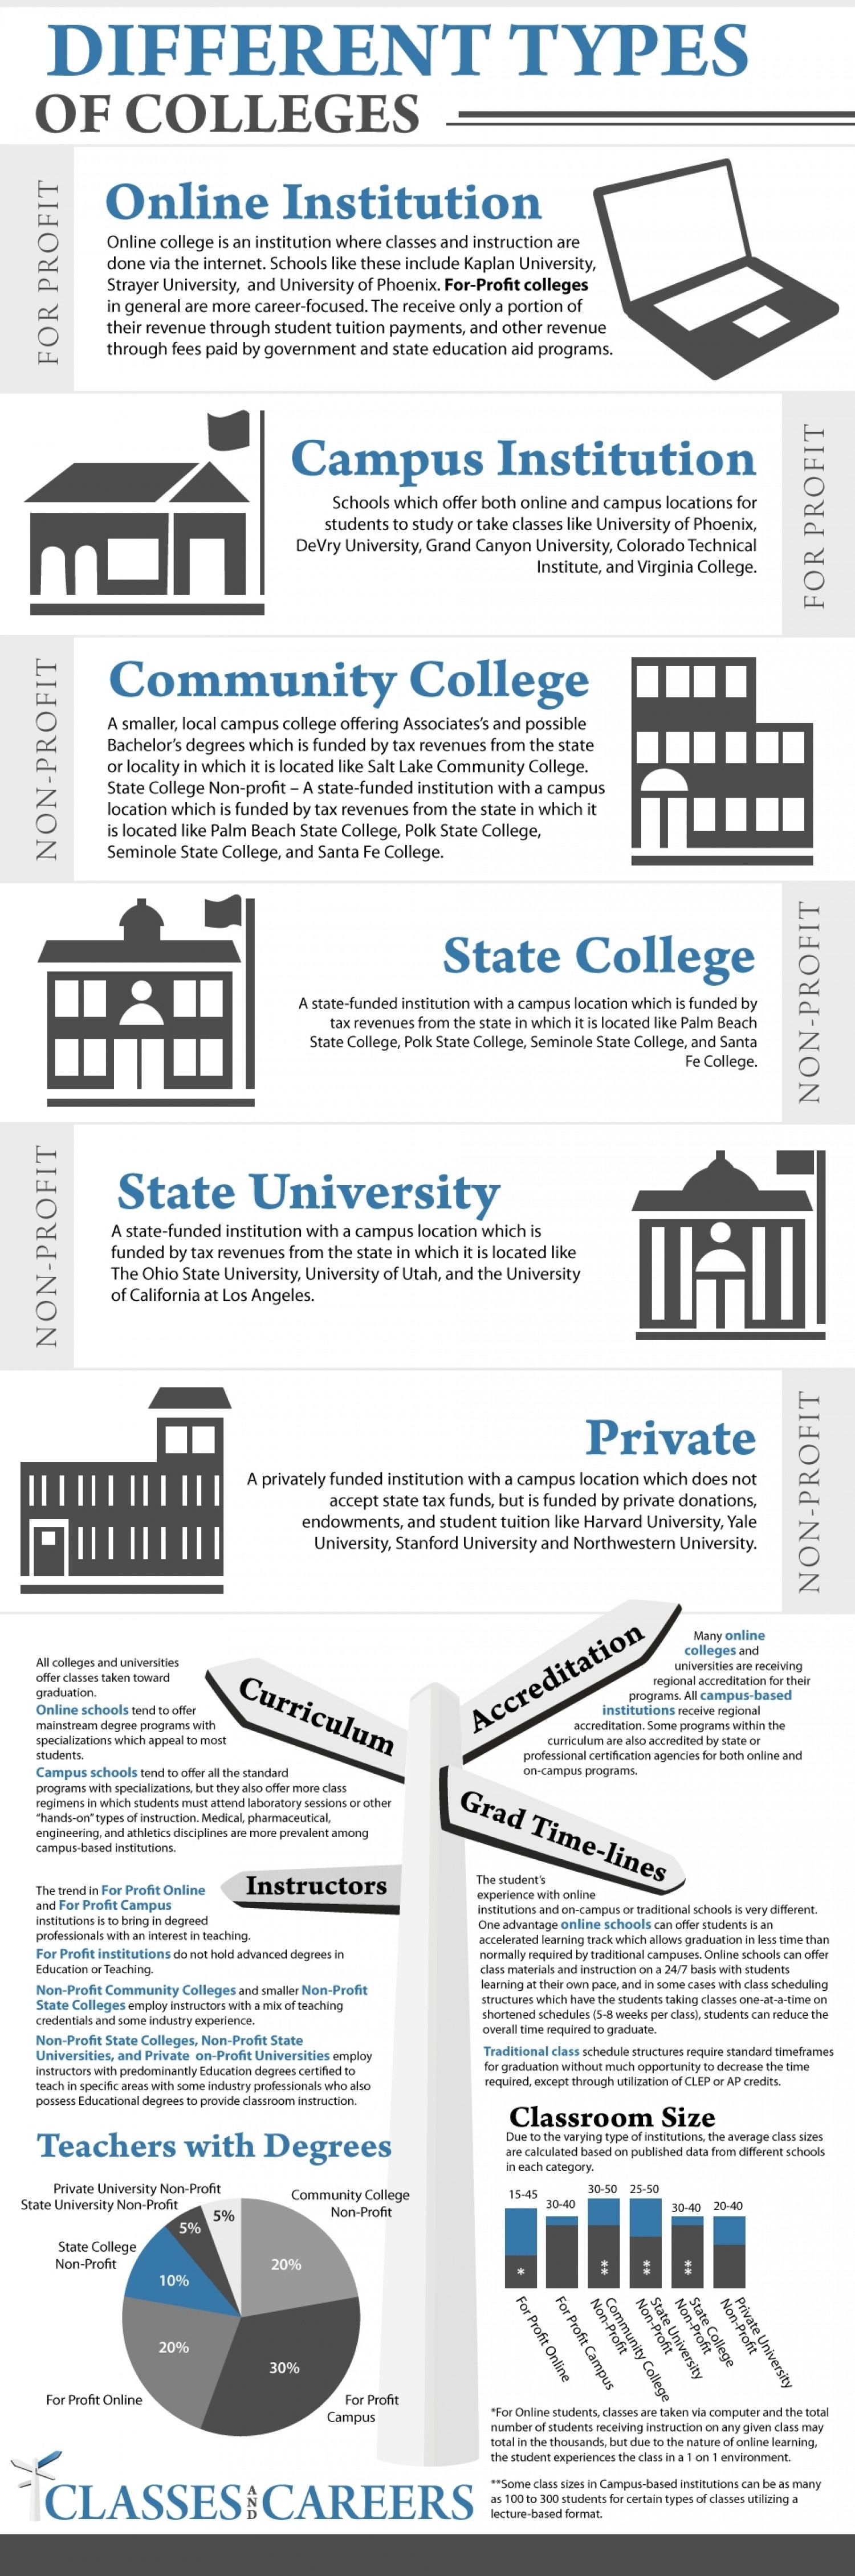 Different Types of Colleges Infographic